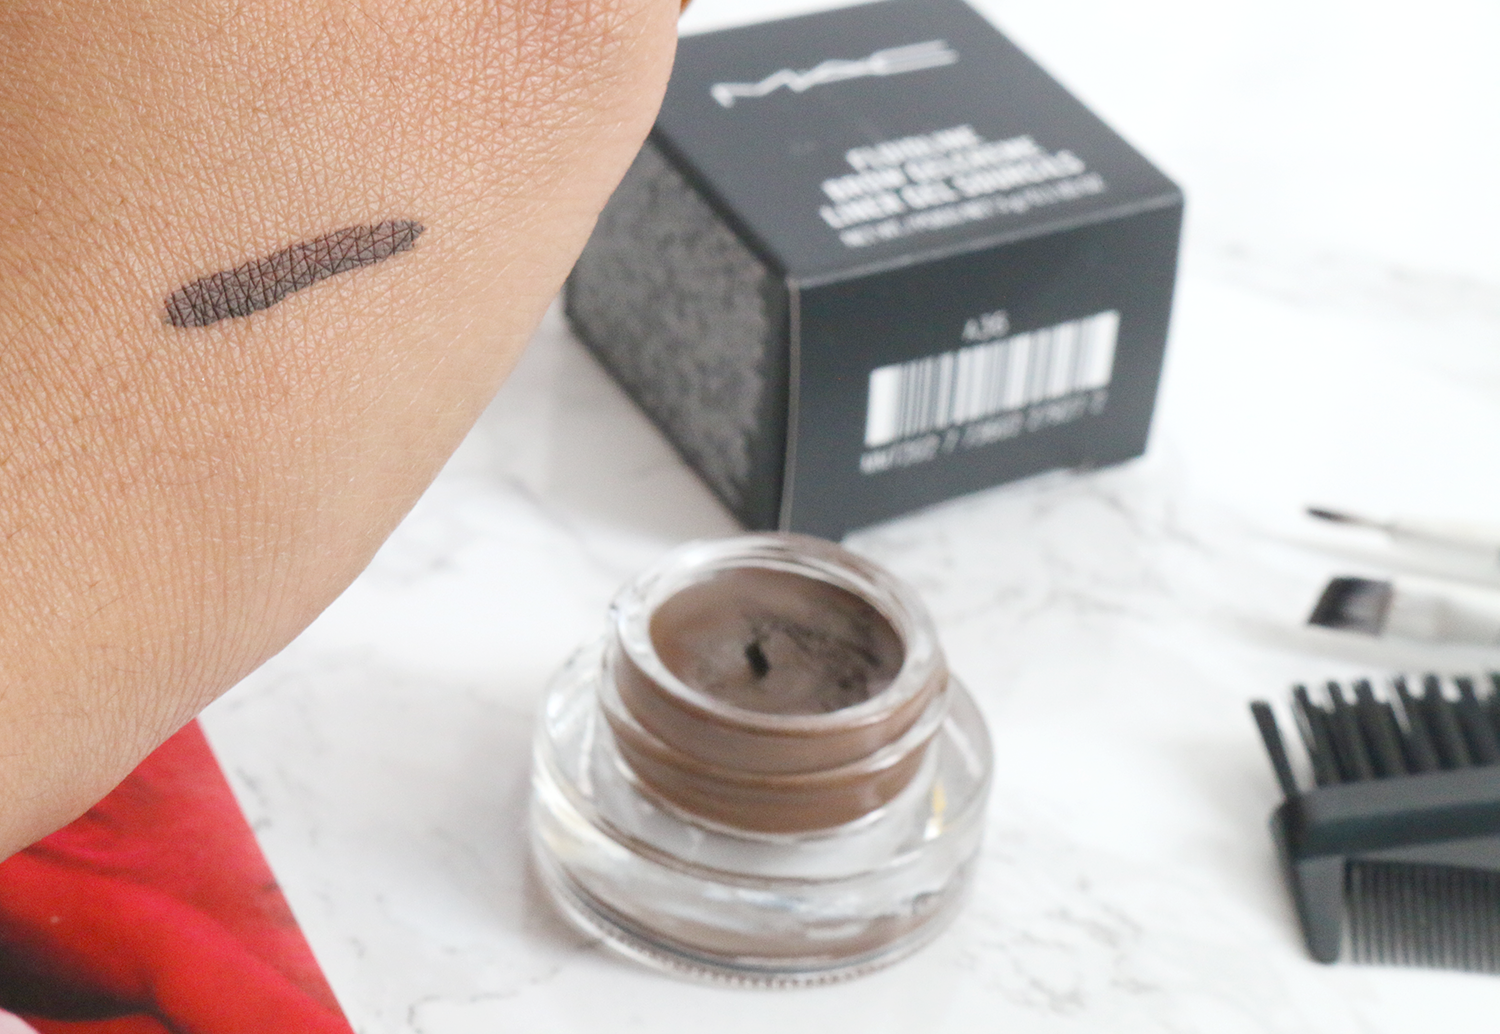 MAC Fluidline Brow Gel Swatch